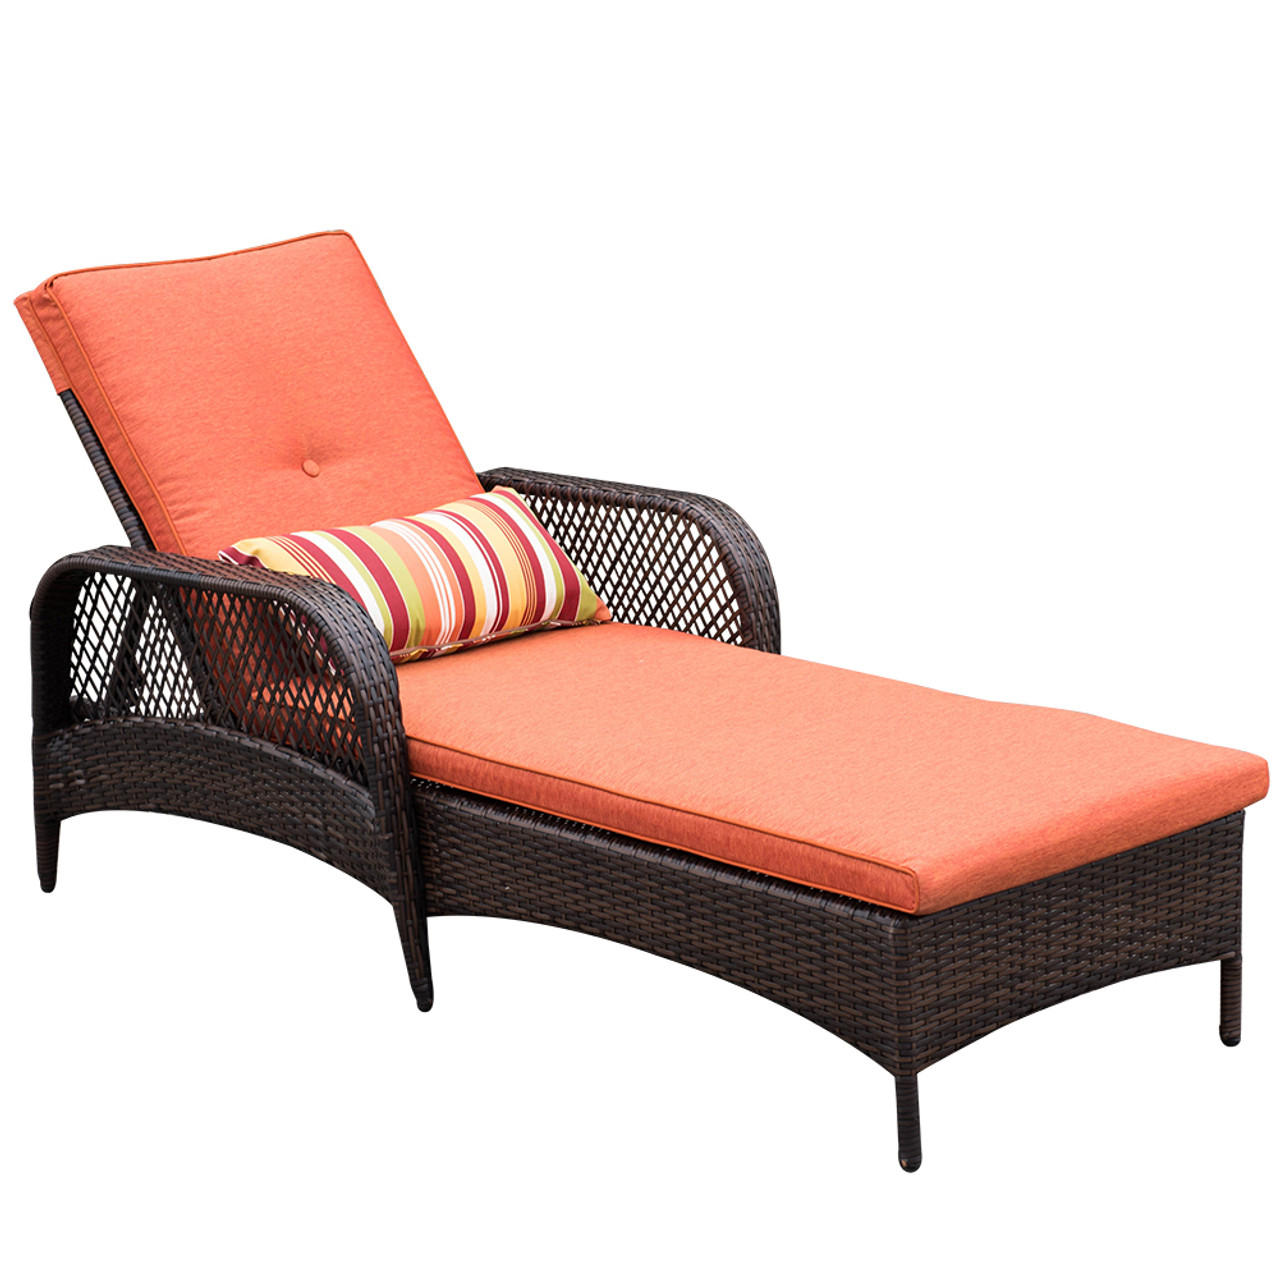 Luxury Reclining Brown Wicker Chaise Lounge Chair Outdoor Patio Yard  Furniture All Weather With Cushions